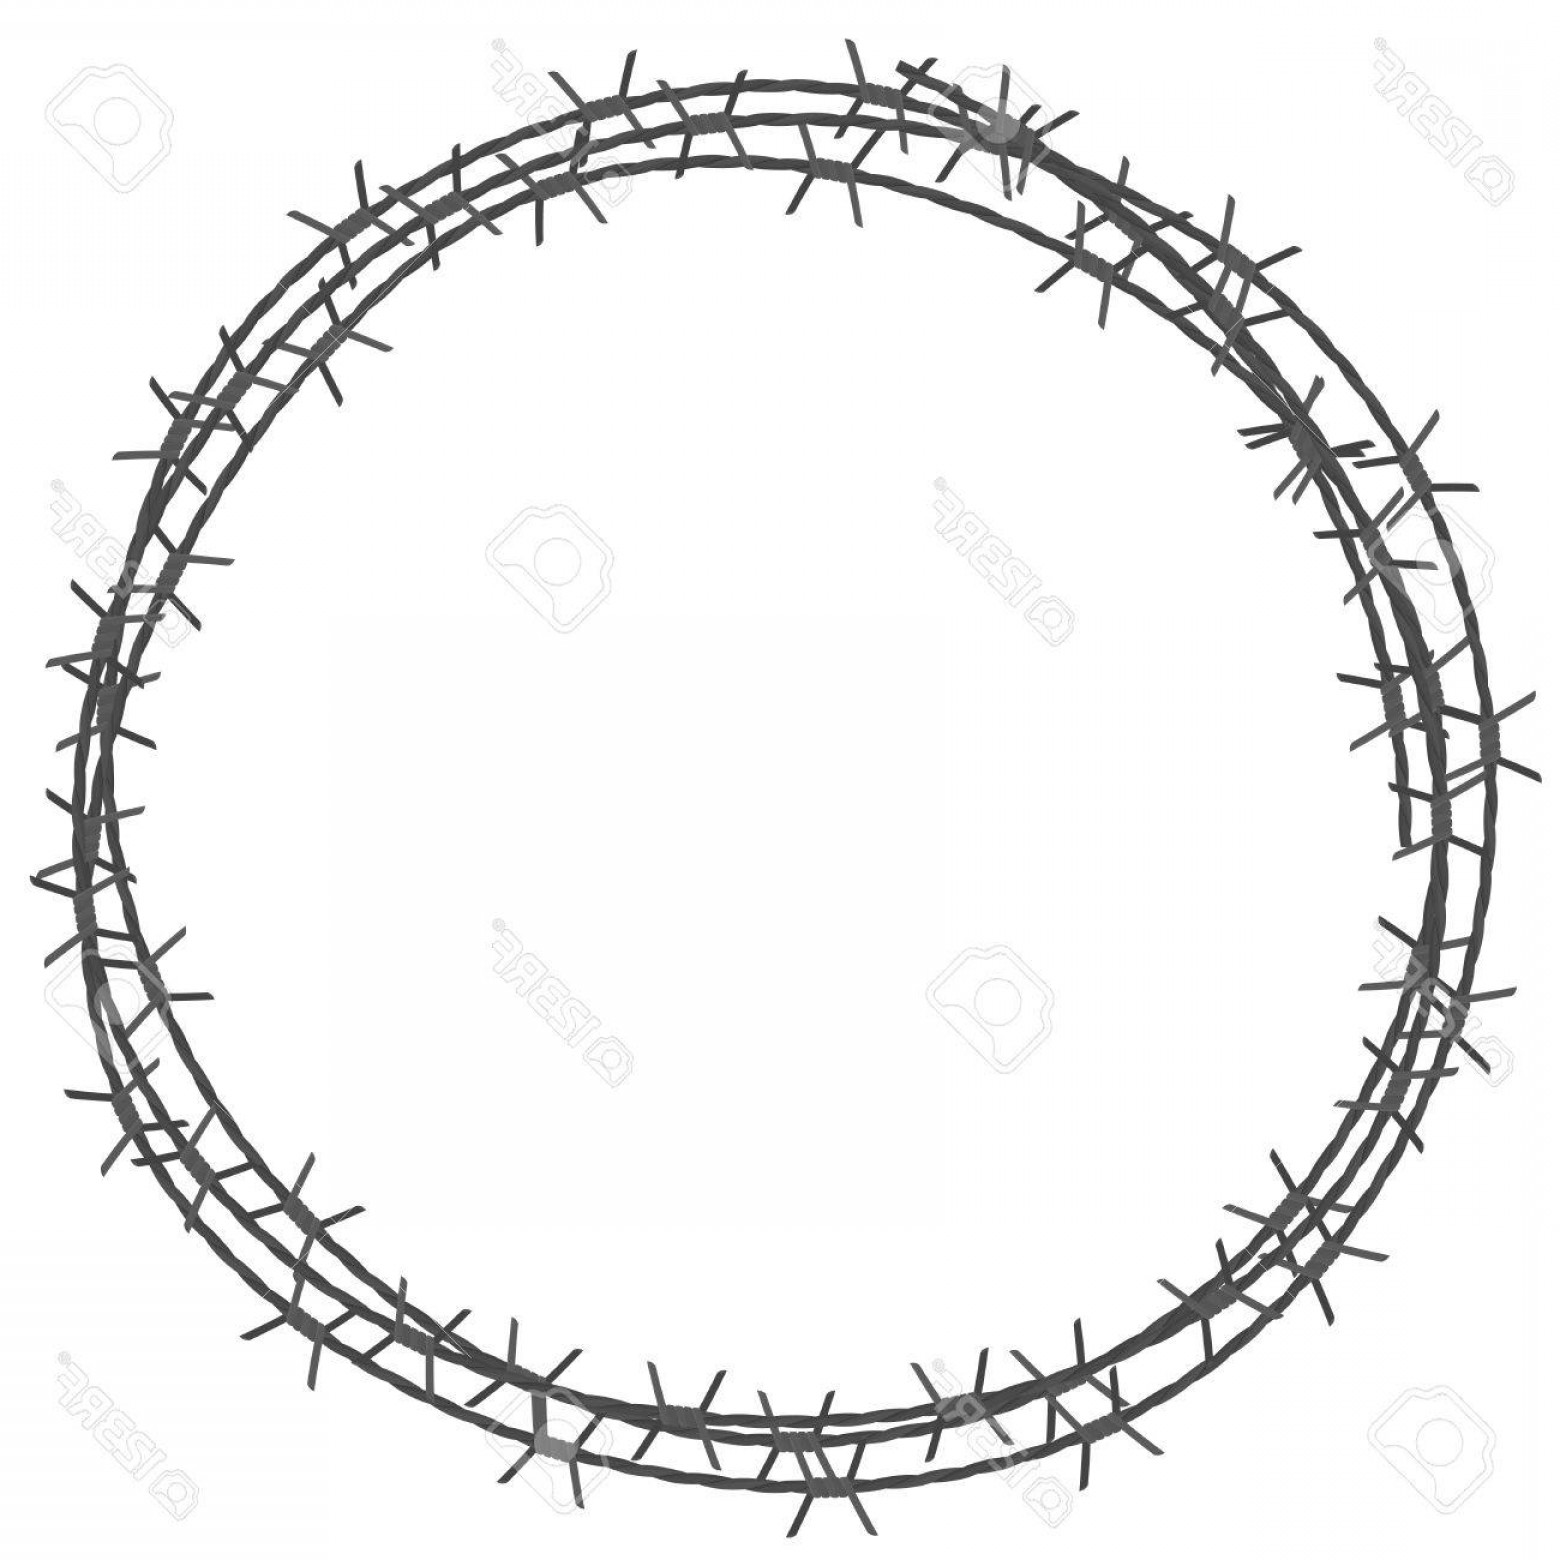 Fence Post Barbed Wire Vector Clip Art: Photostock Vector Barbed Wire Circle Border Vector Illustration Isolated On White Background